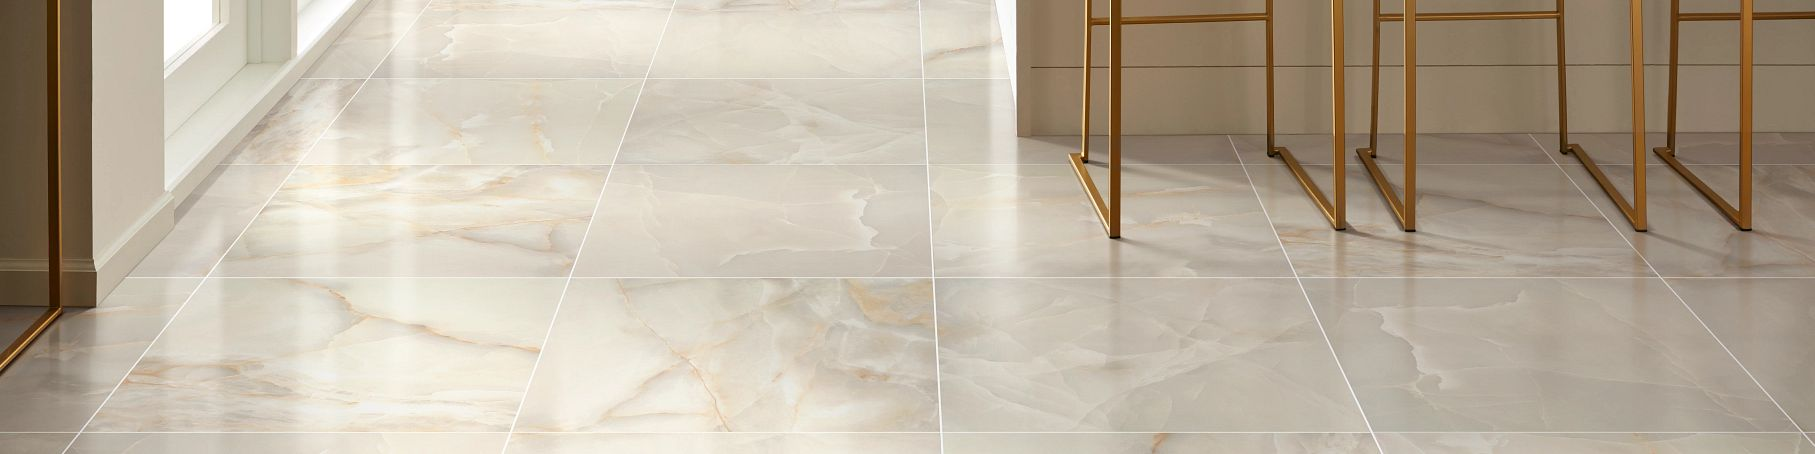 Tile-and-Stone-Gemstone-Polished-336TS-00200-Beige-24x24-BrickMosaic-Kitchen-2020